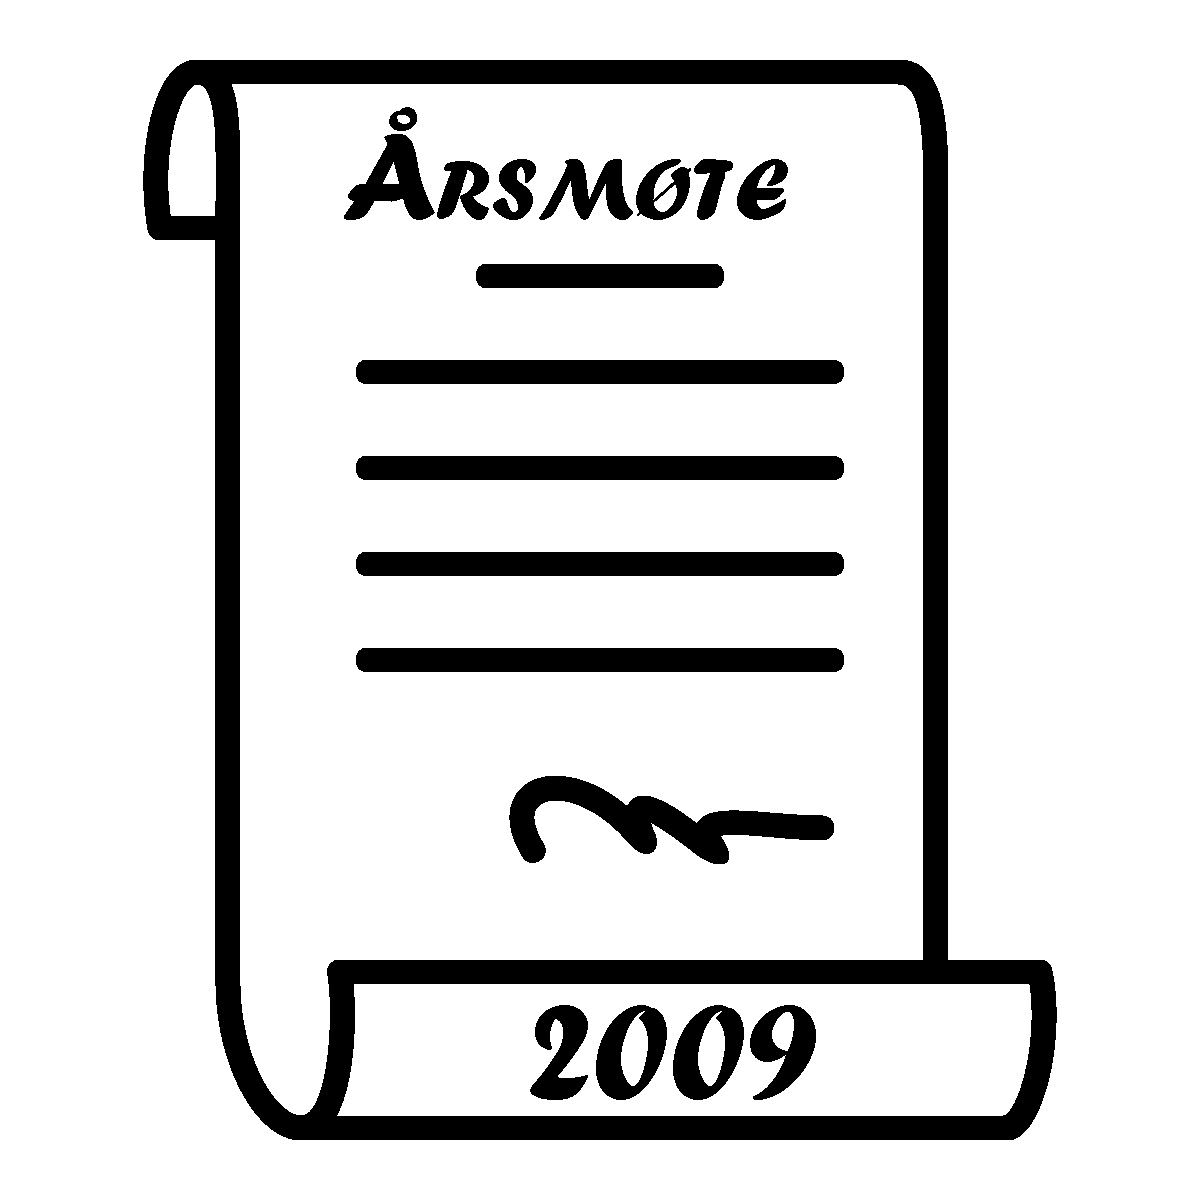 Arsmote%202009.png